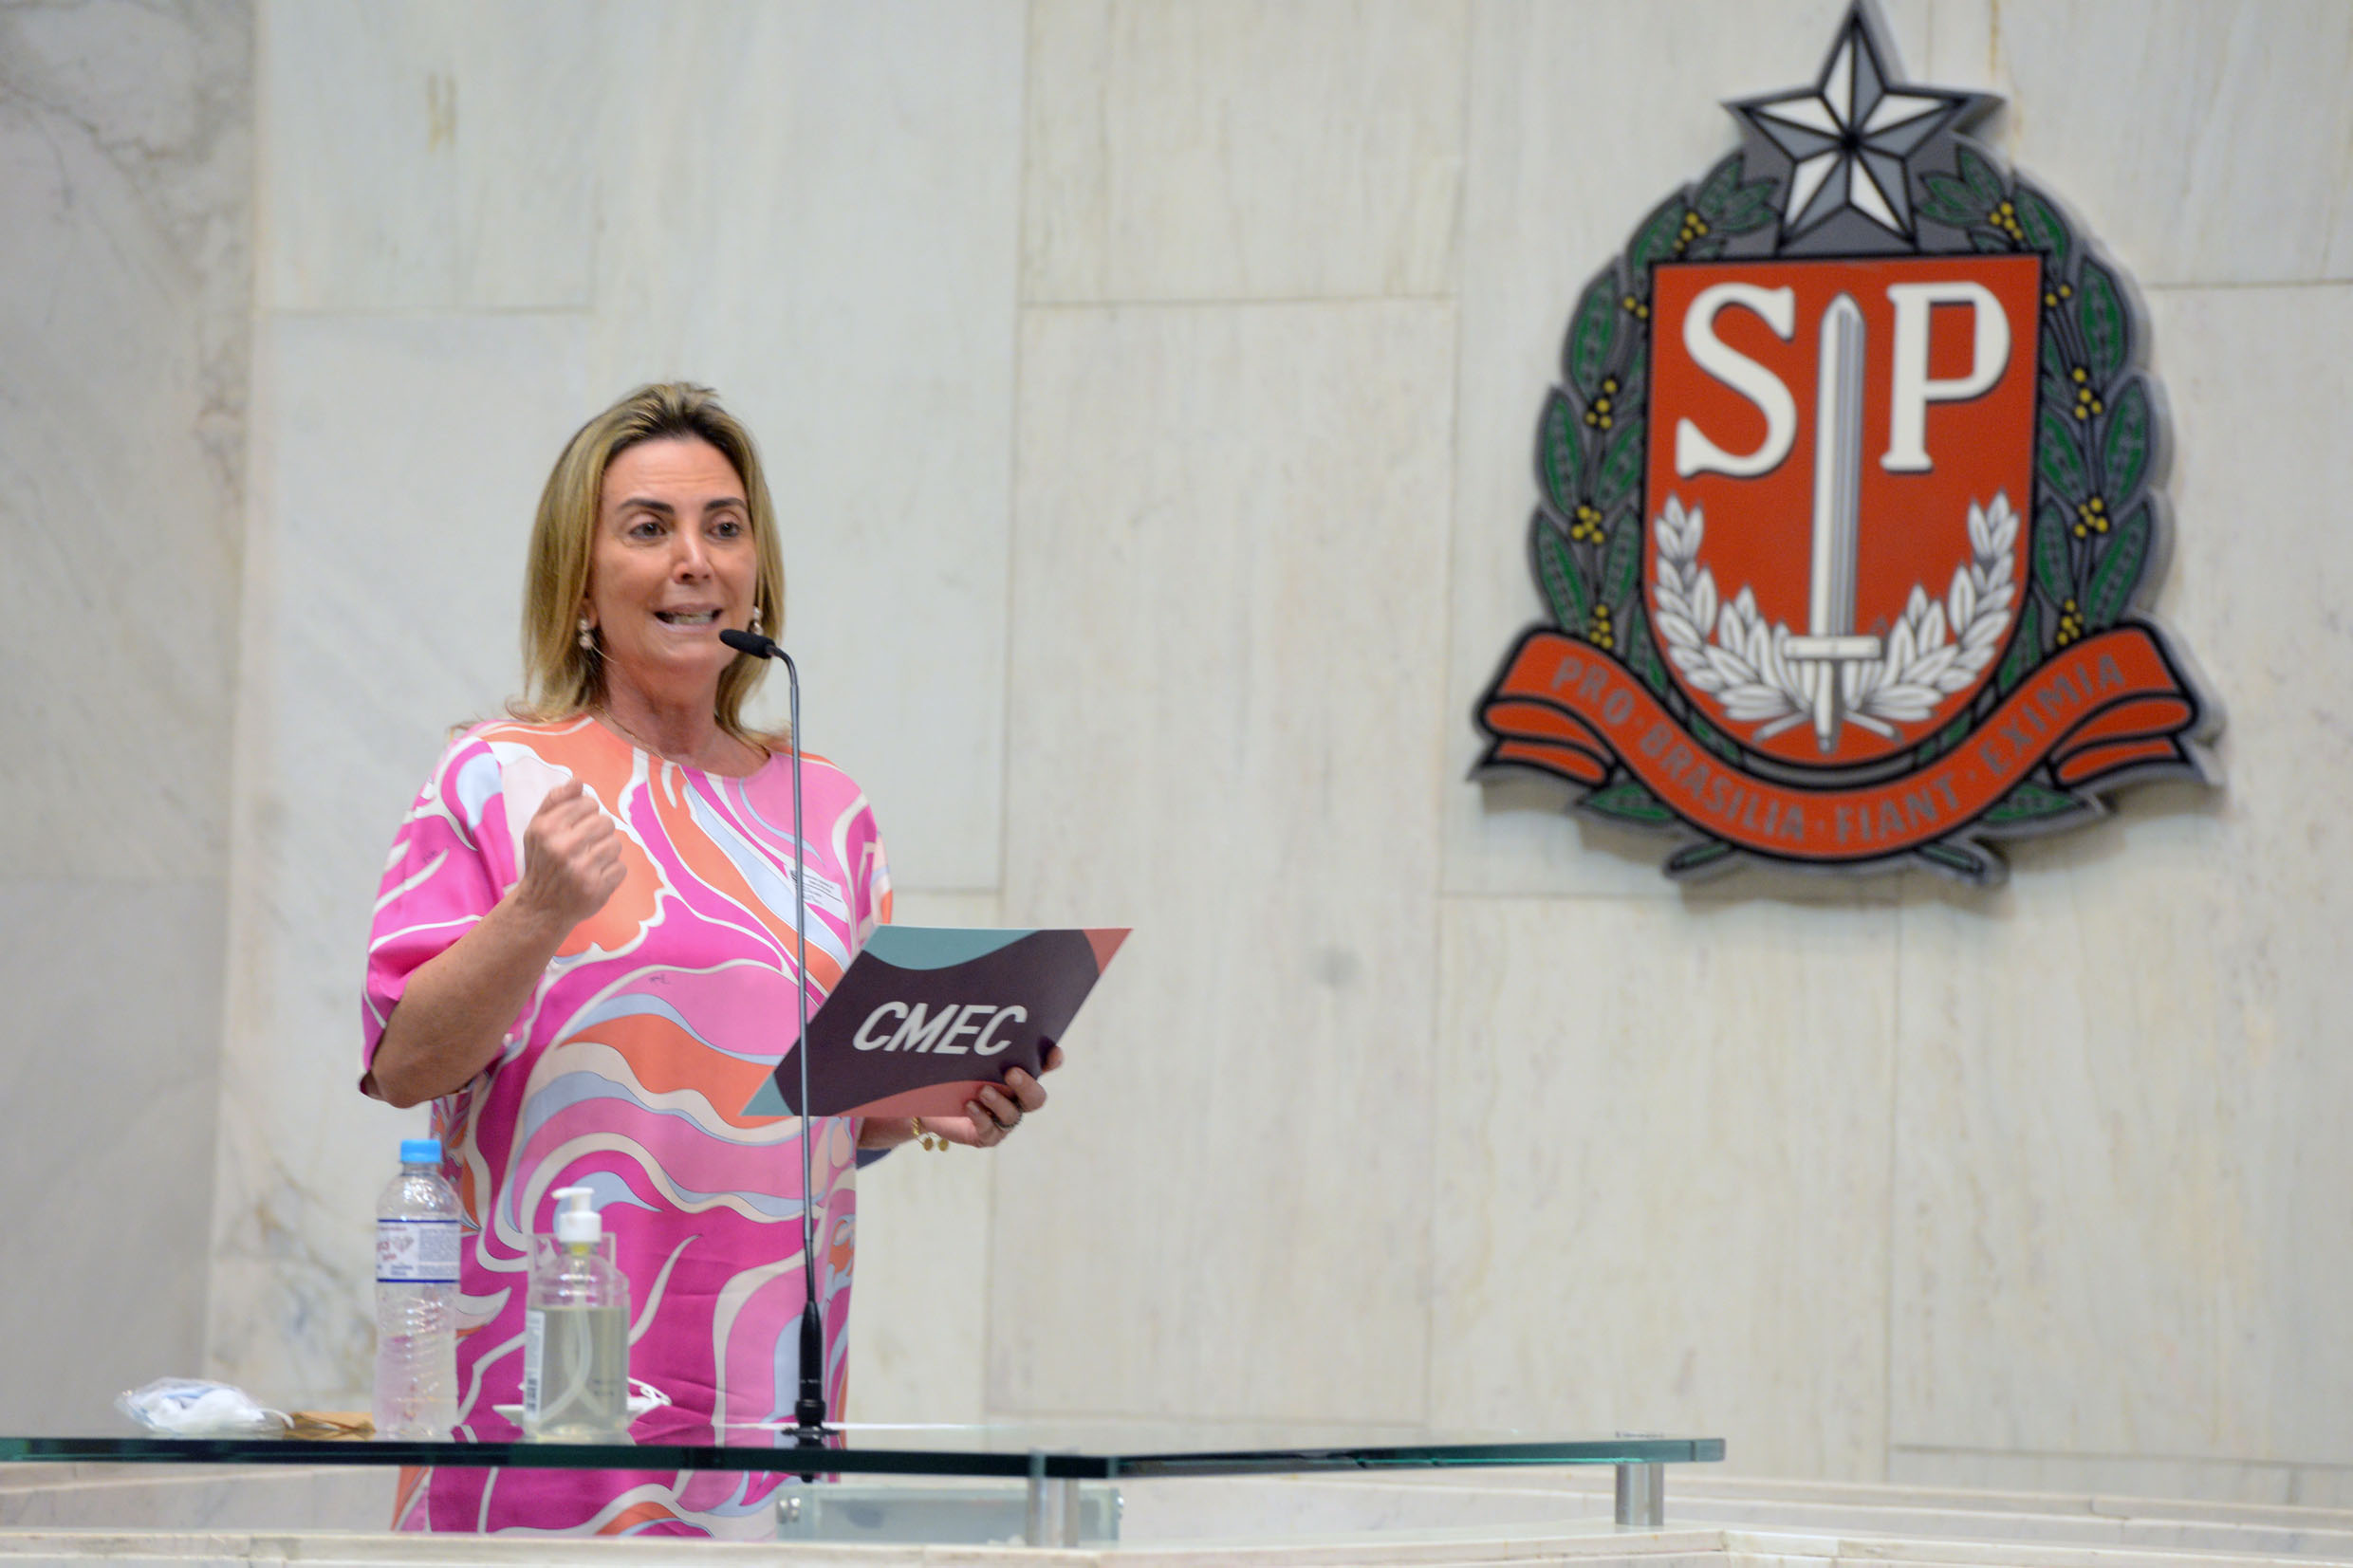 Ana Cláudia Badra Cotait<a style='float:right' href='https://www3.al.sp.gov.br/repositorio/noticia/N-09-2021/fg274354.jpg' target=_blank><img src='/_img/material-file-download-white.png' width='14px' alt='Clique para baixar a imagem'></a>